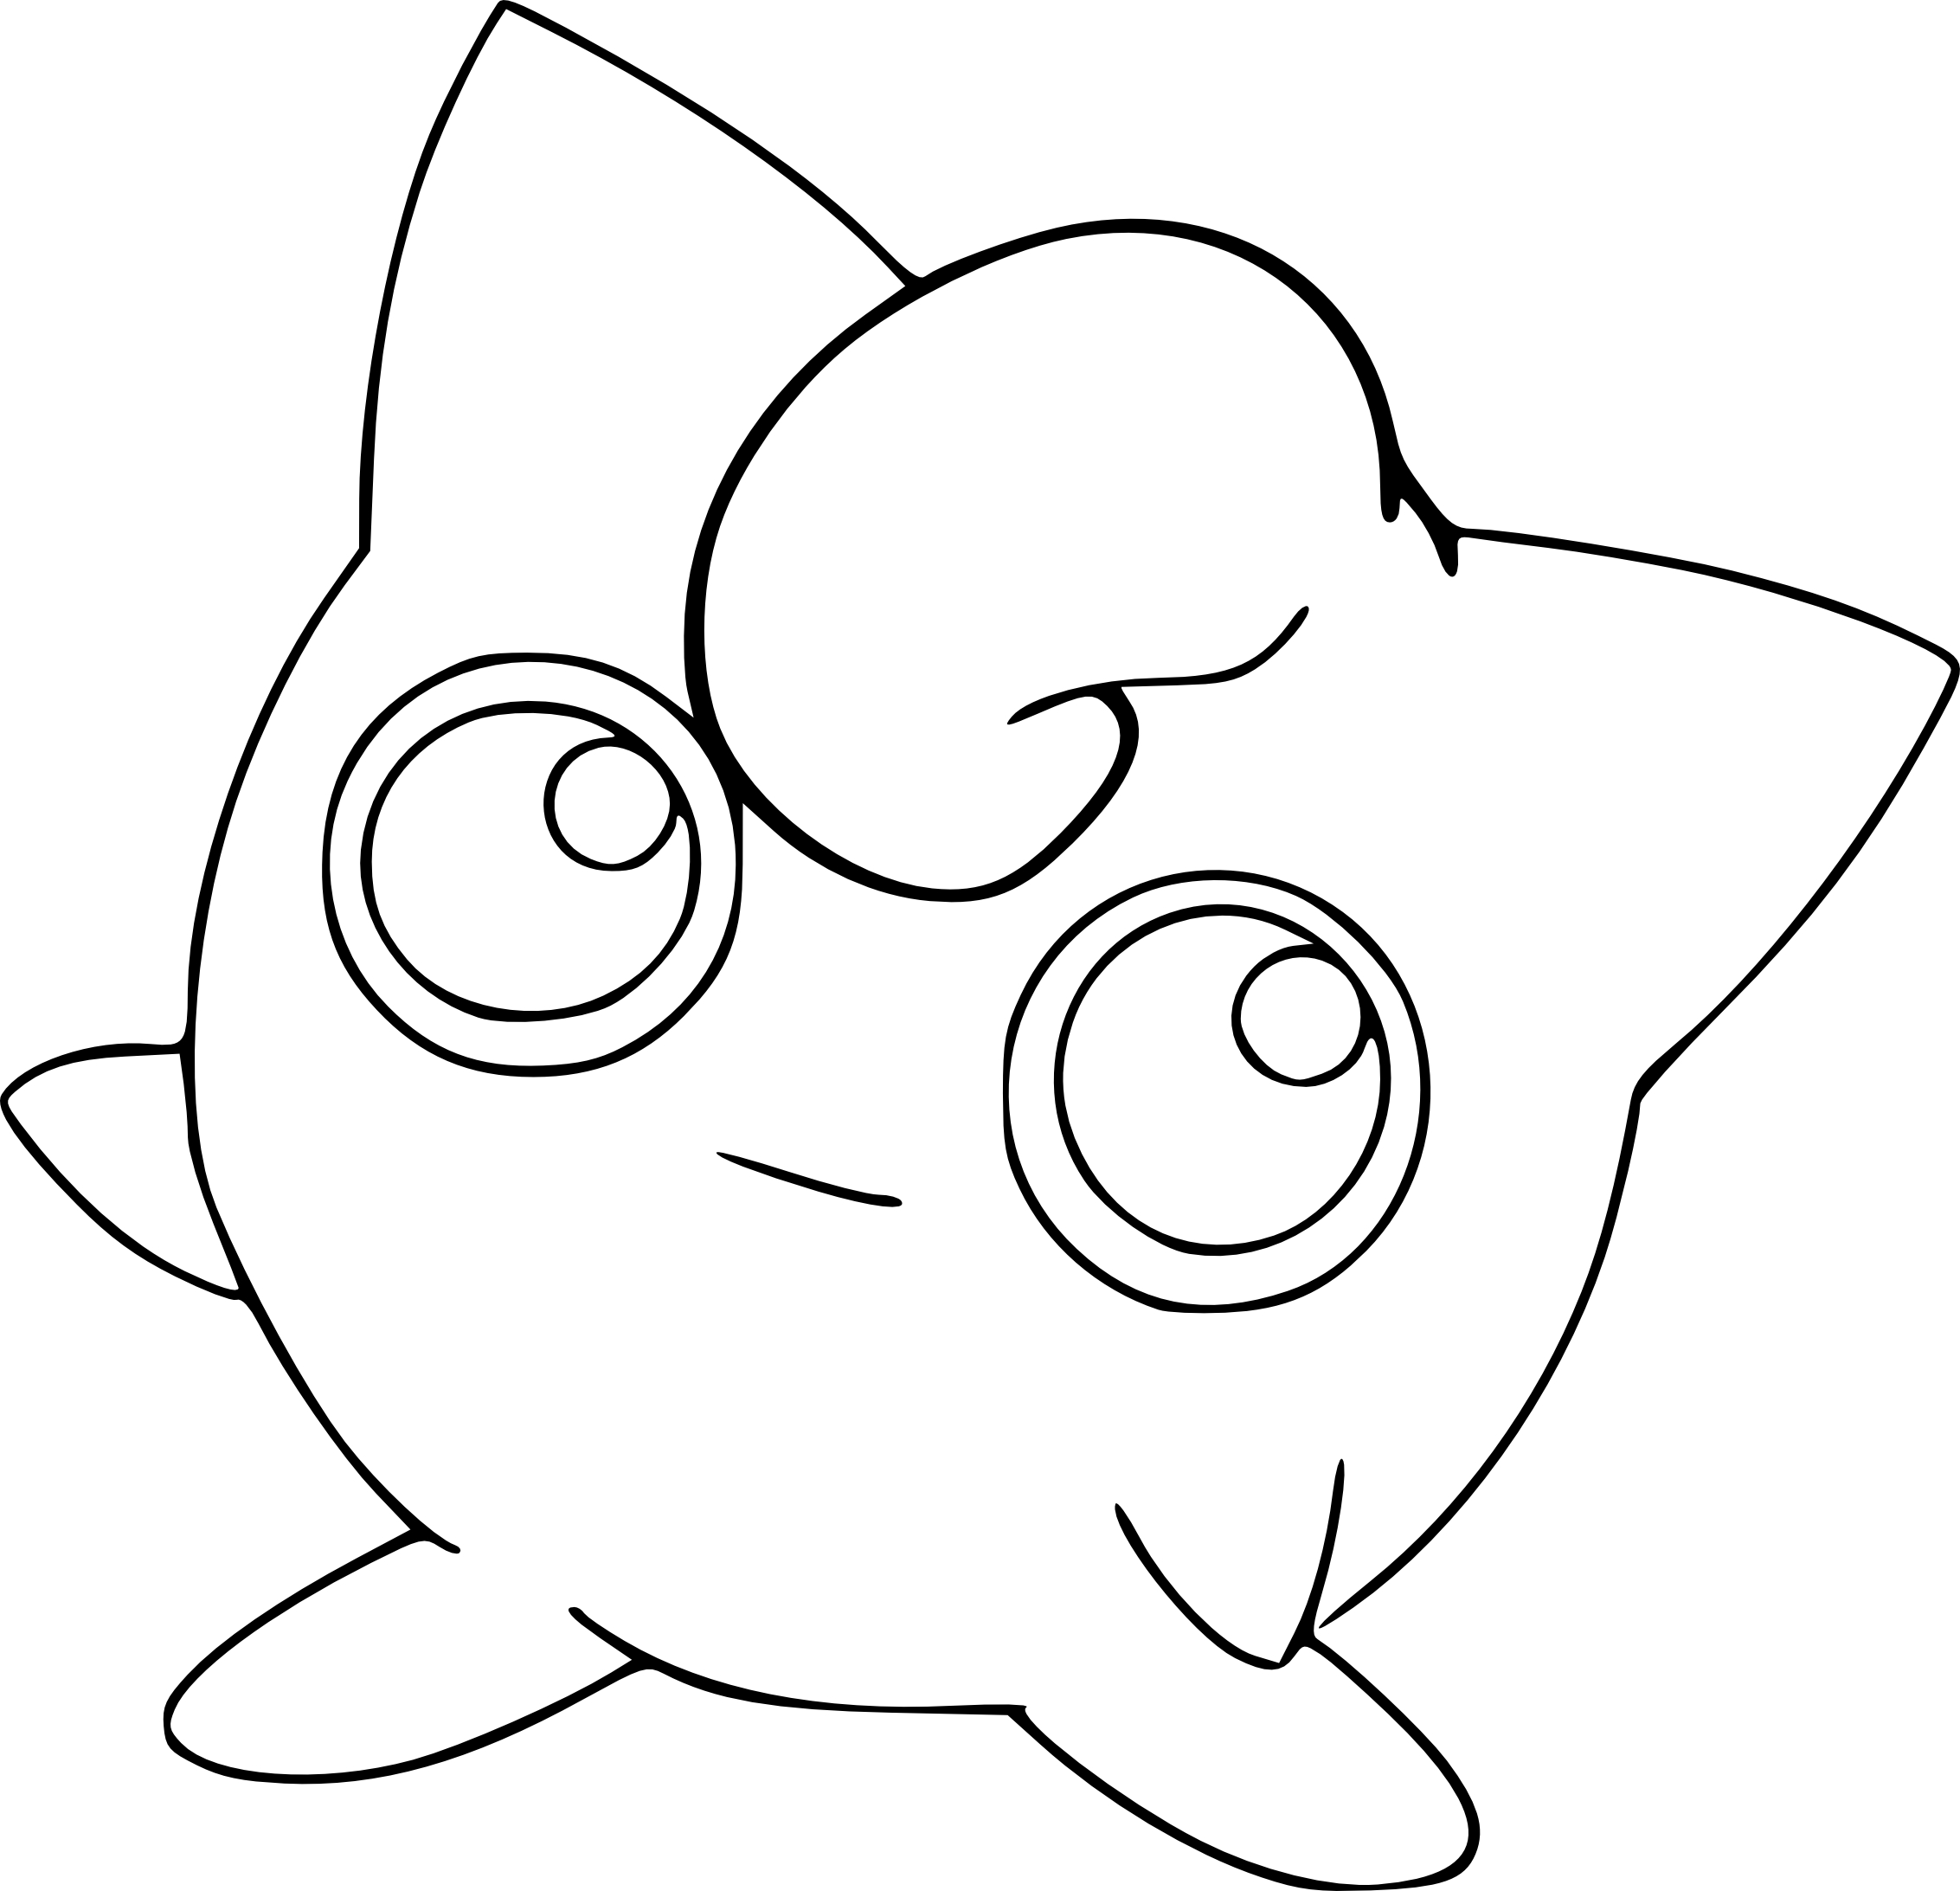 pokemon coloring pages jigglypuff amazing pokemon jigglypuff coloring page download jigglypuff pages coloring pokemon